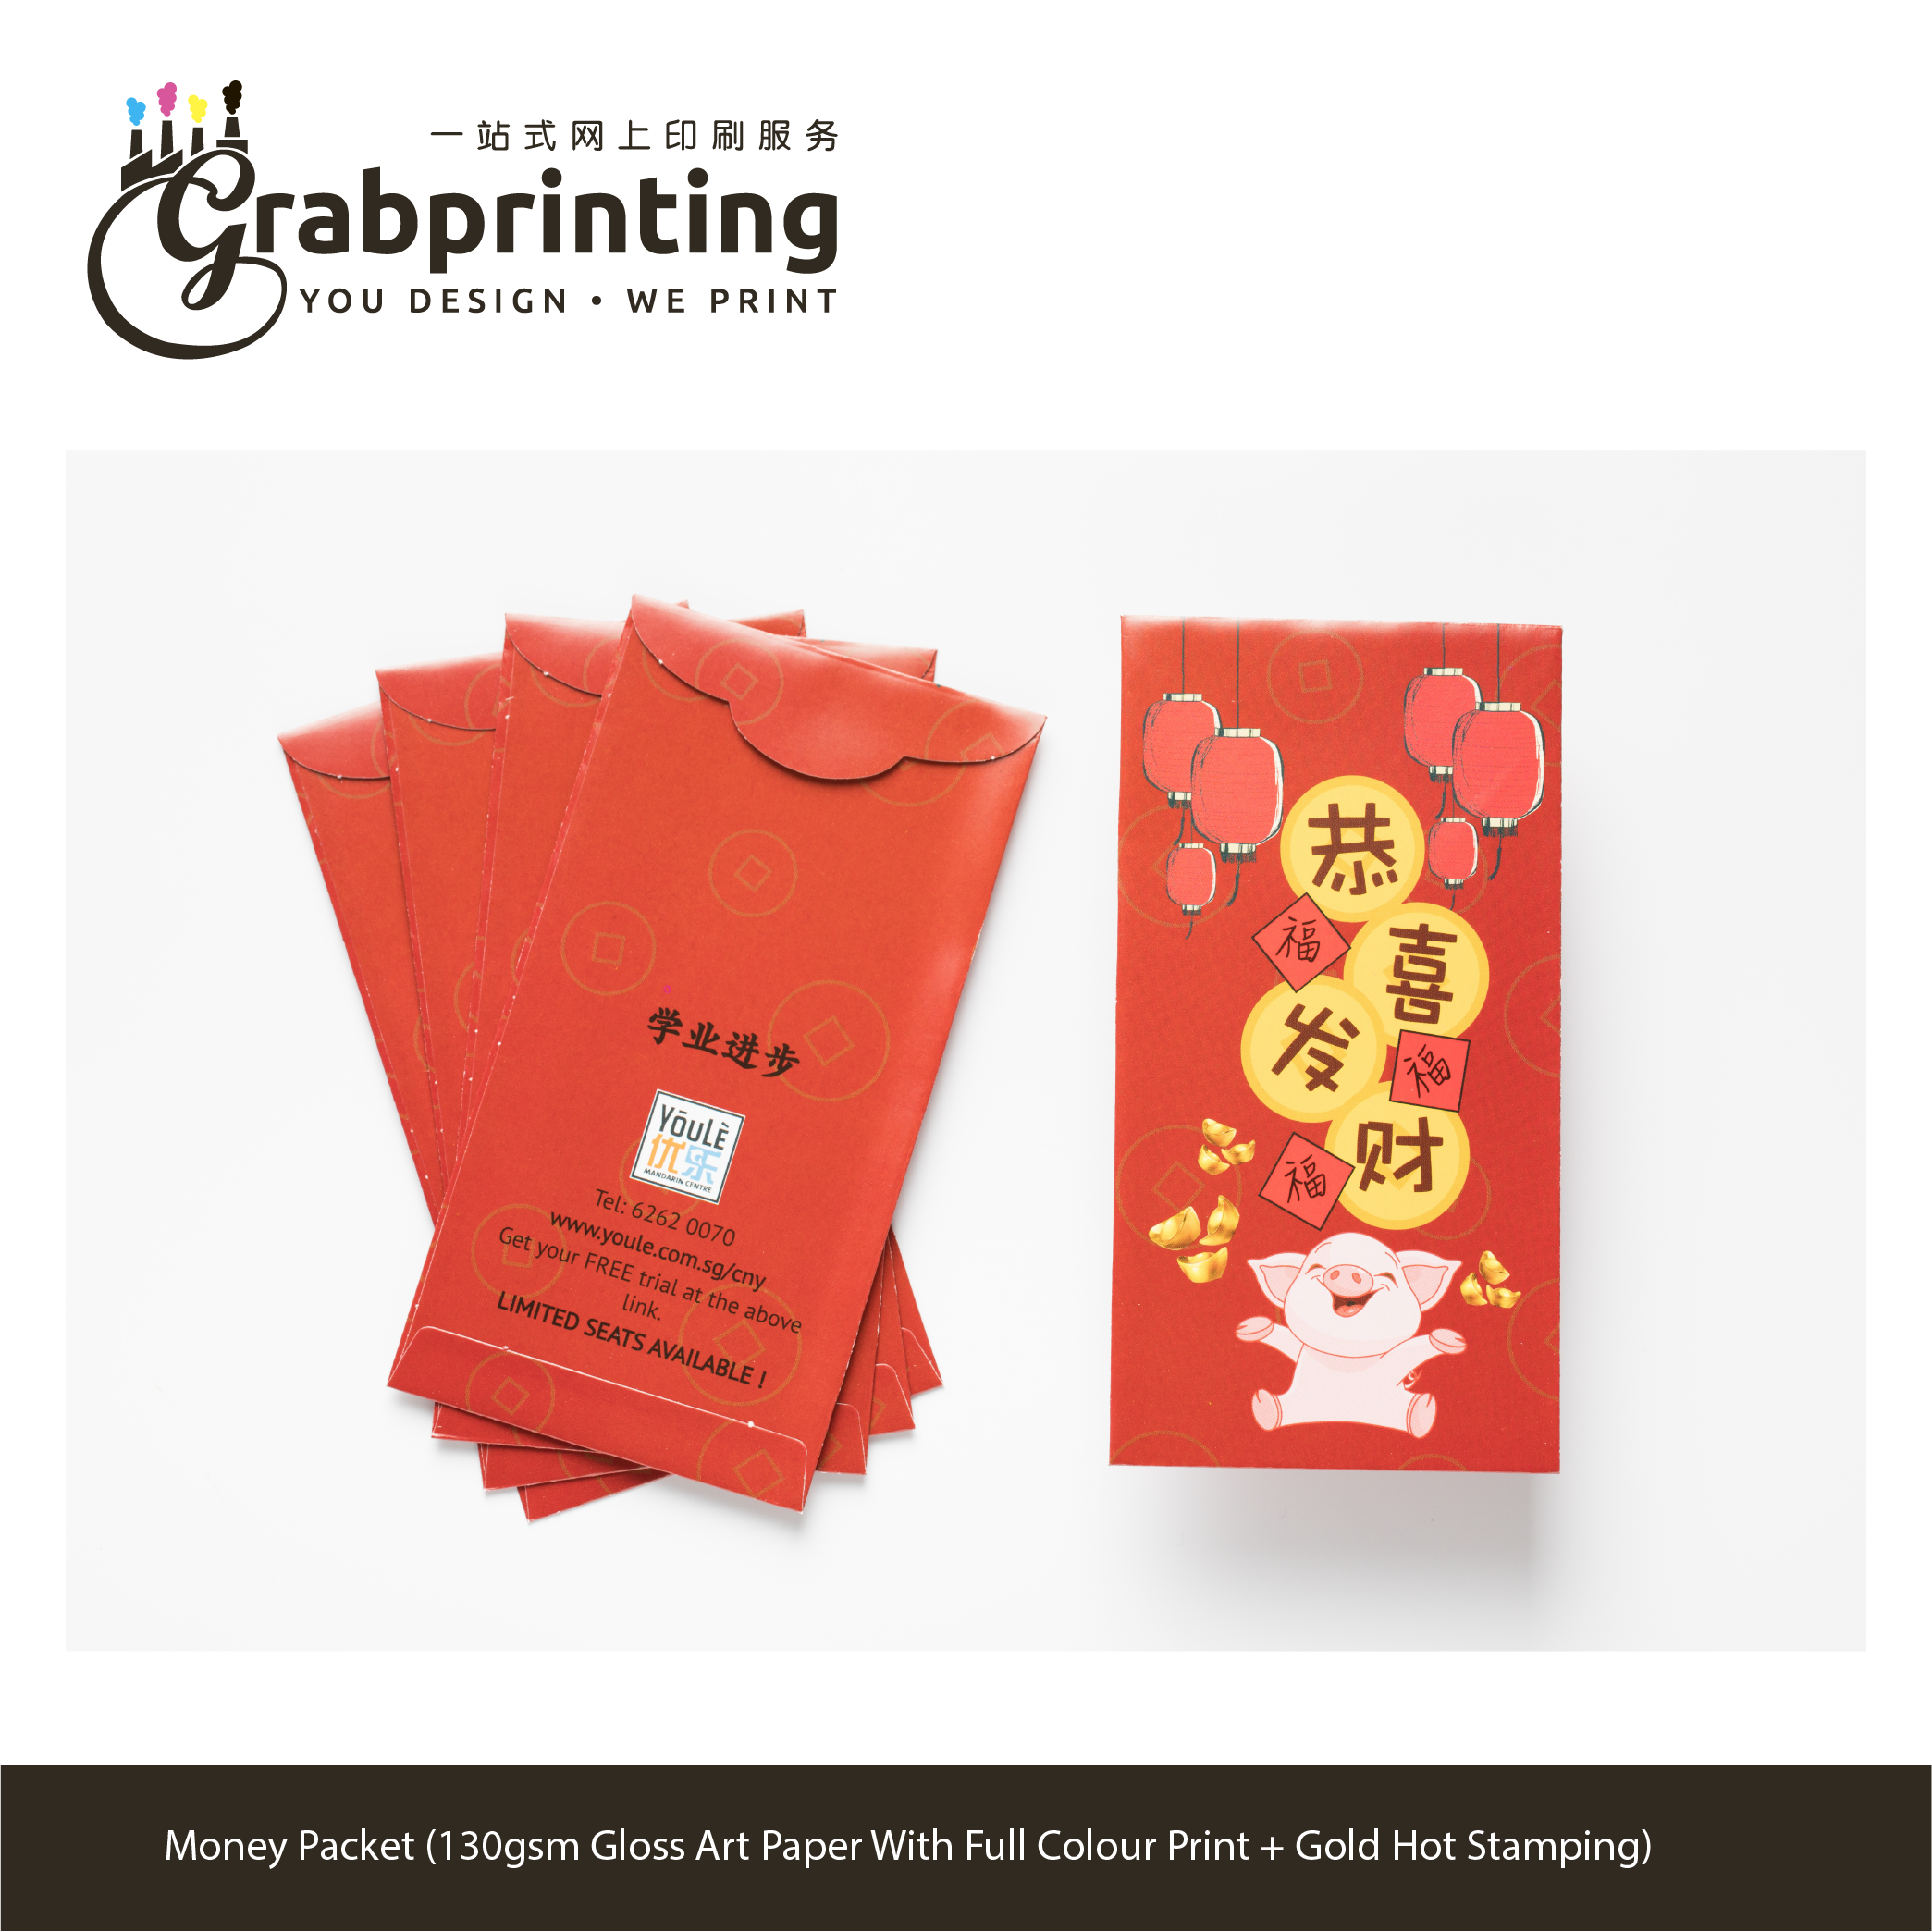 Custom Print Money Packet (130gsm Gloss Art Paper) grabprinting 05 Money Packet 130gsm Gloss Art Paper With Full Colour Print Gold Hot Stamping 501px 501px